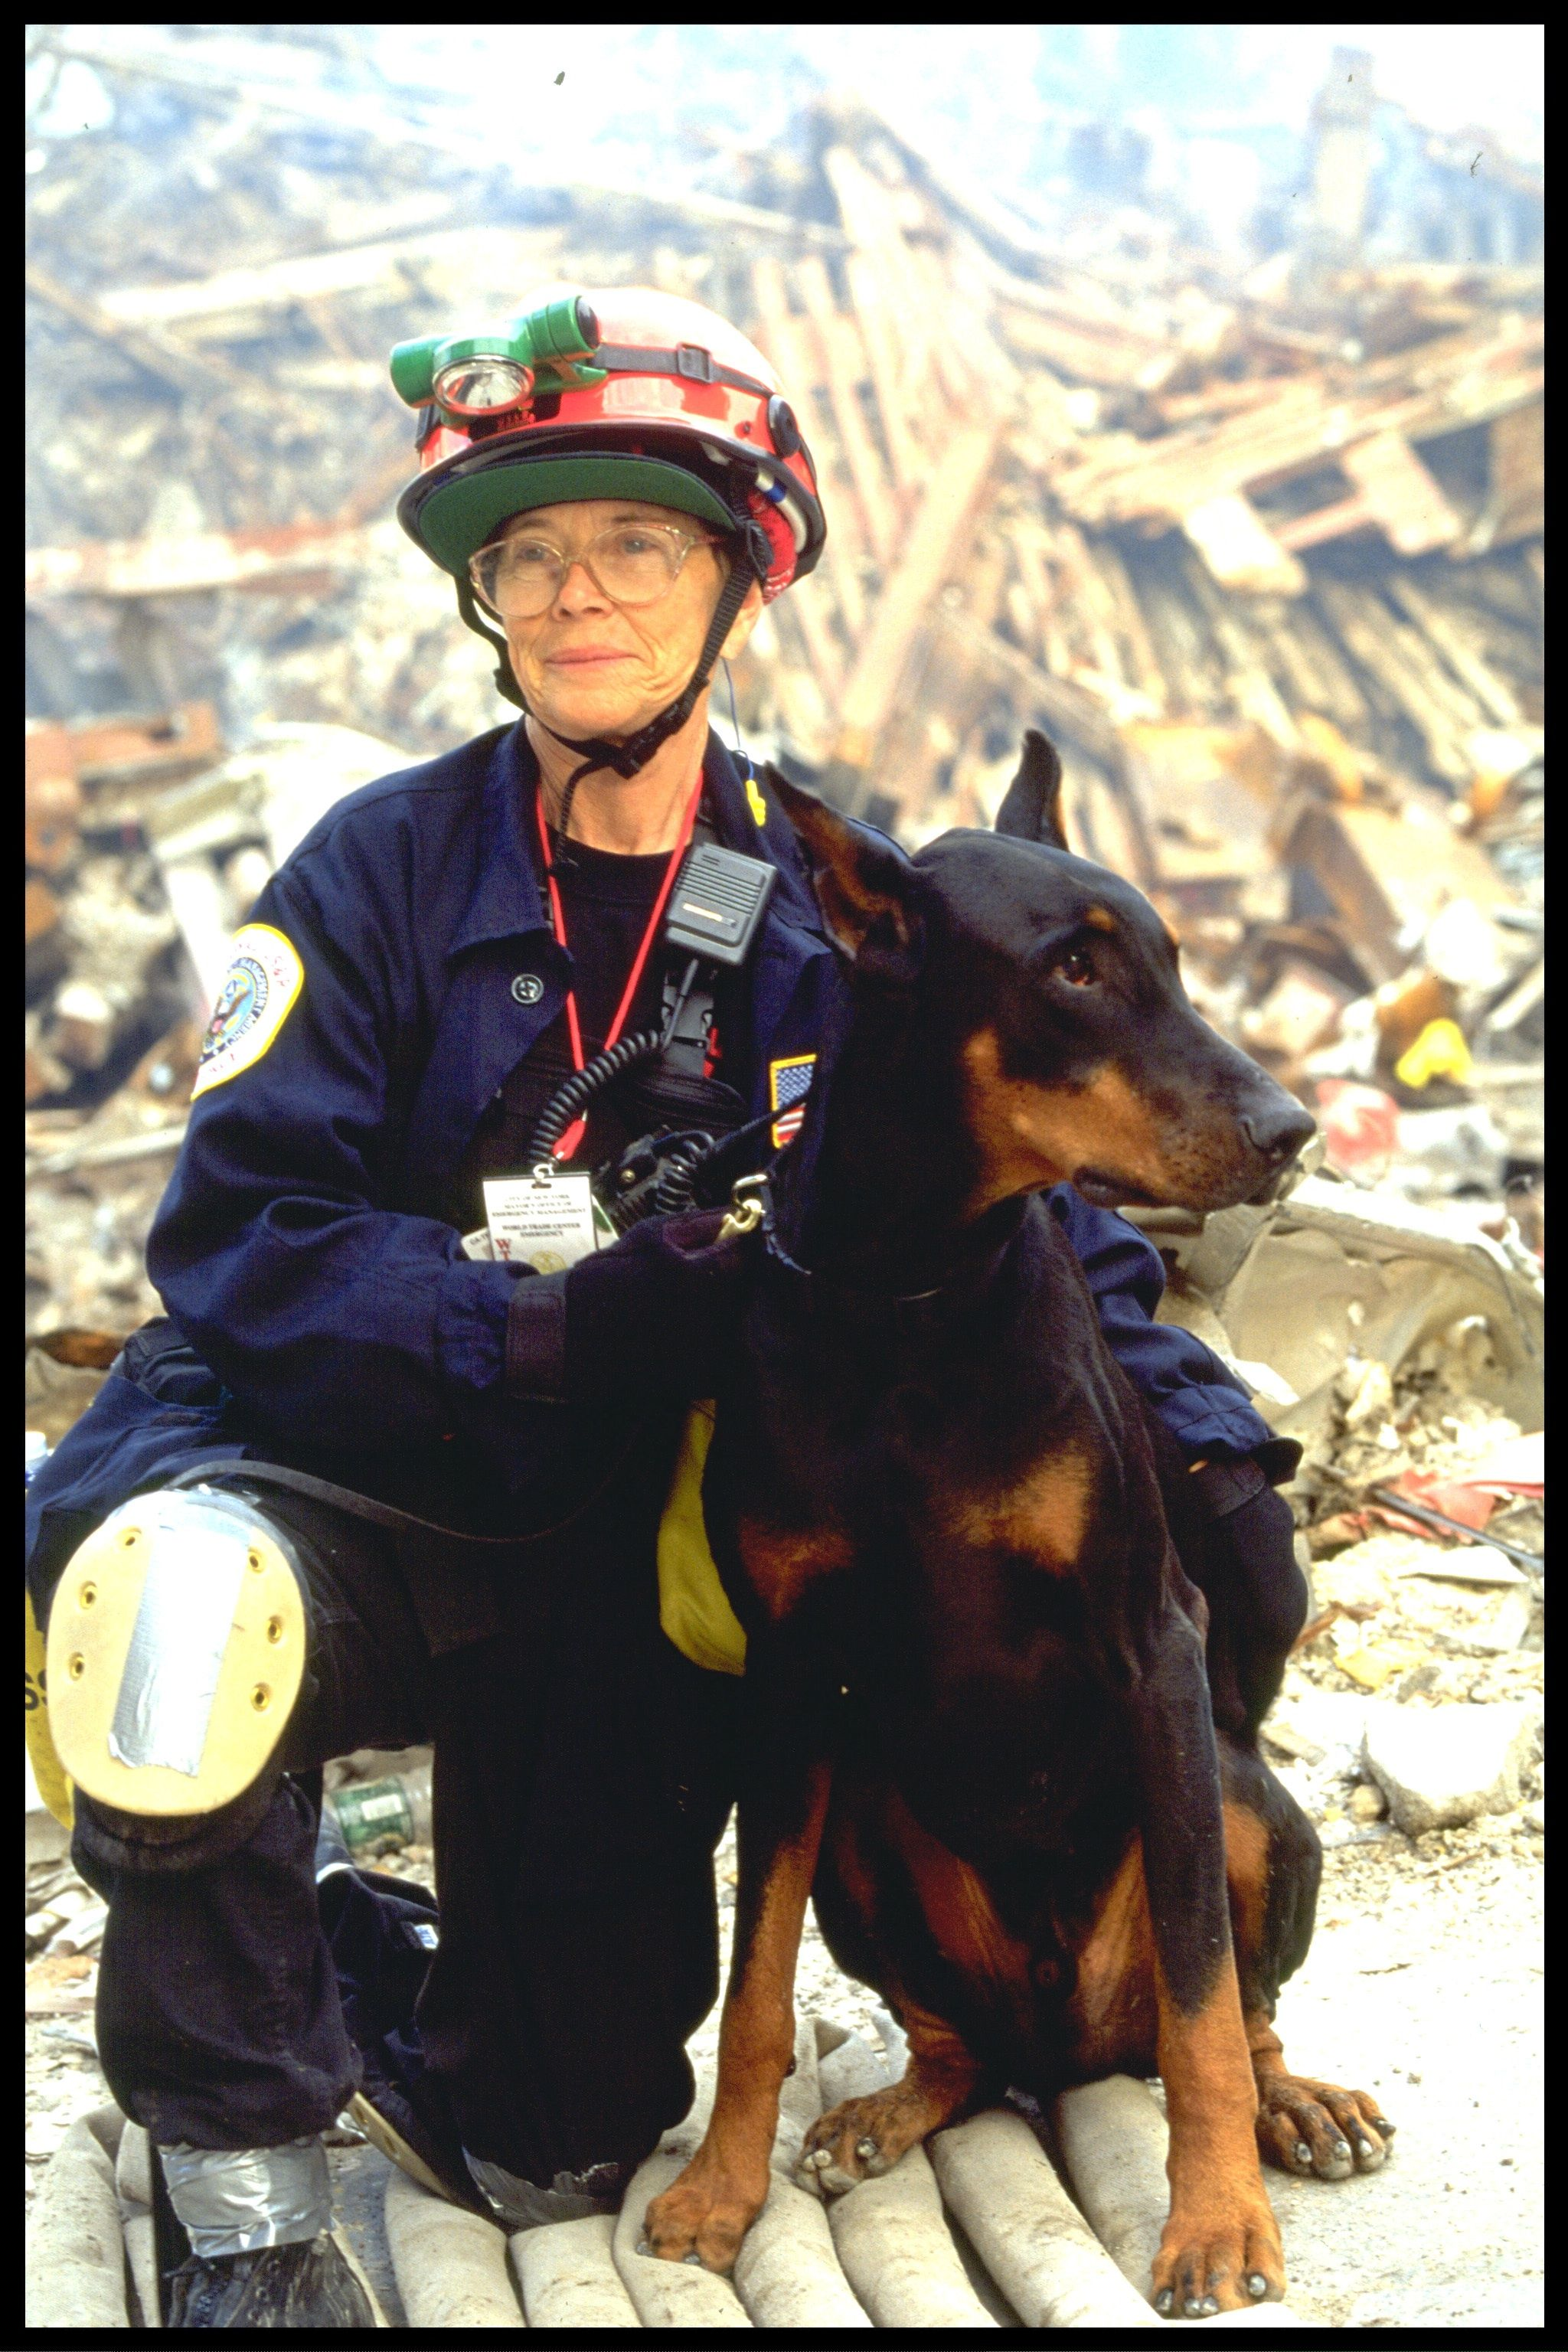 Dog Heroes Of September 11 Dog Hero Search And Rescue Dogs